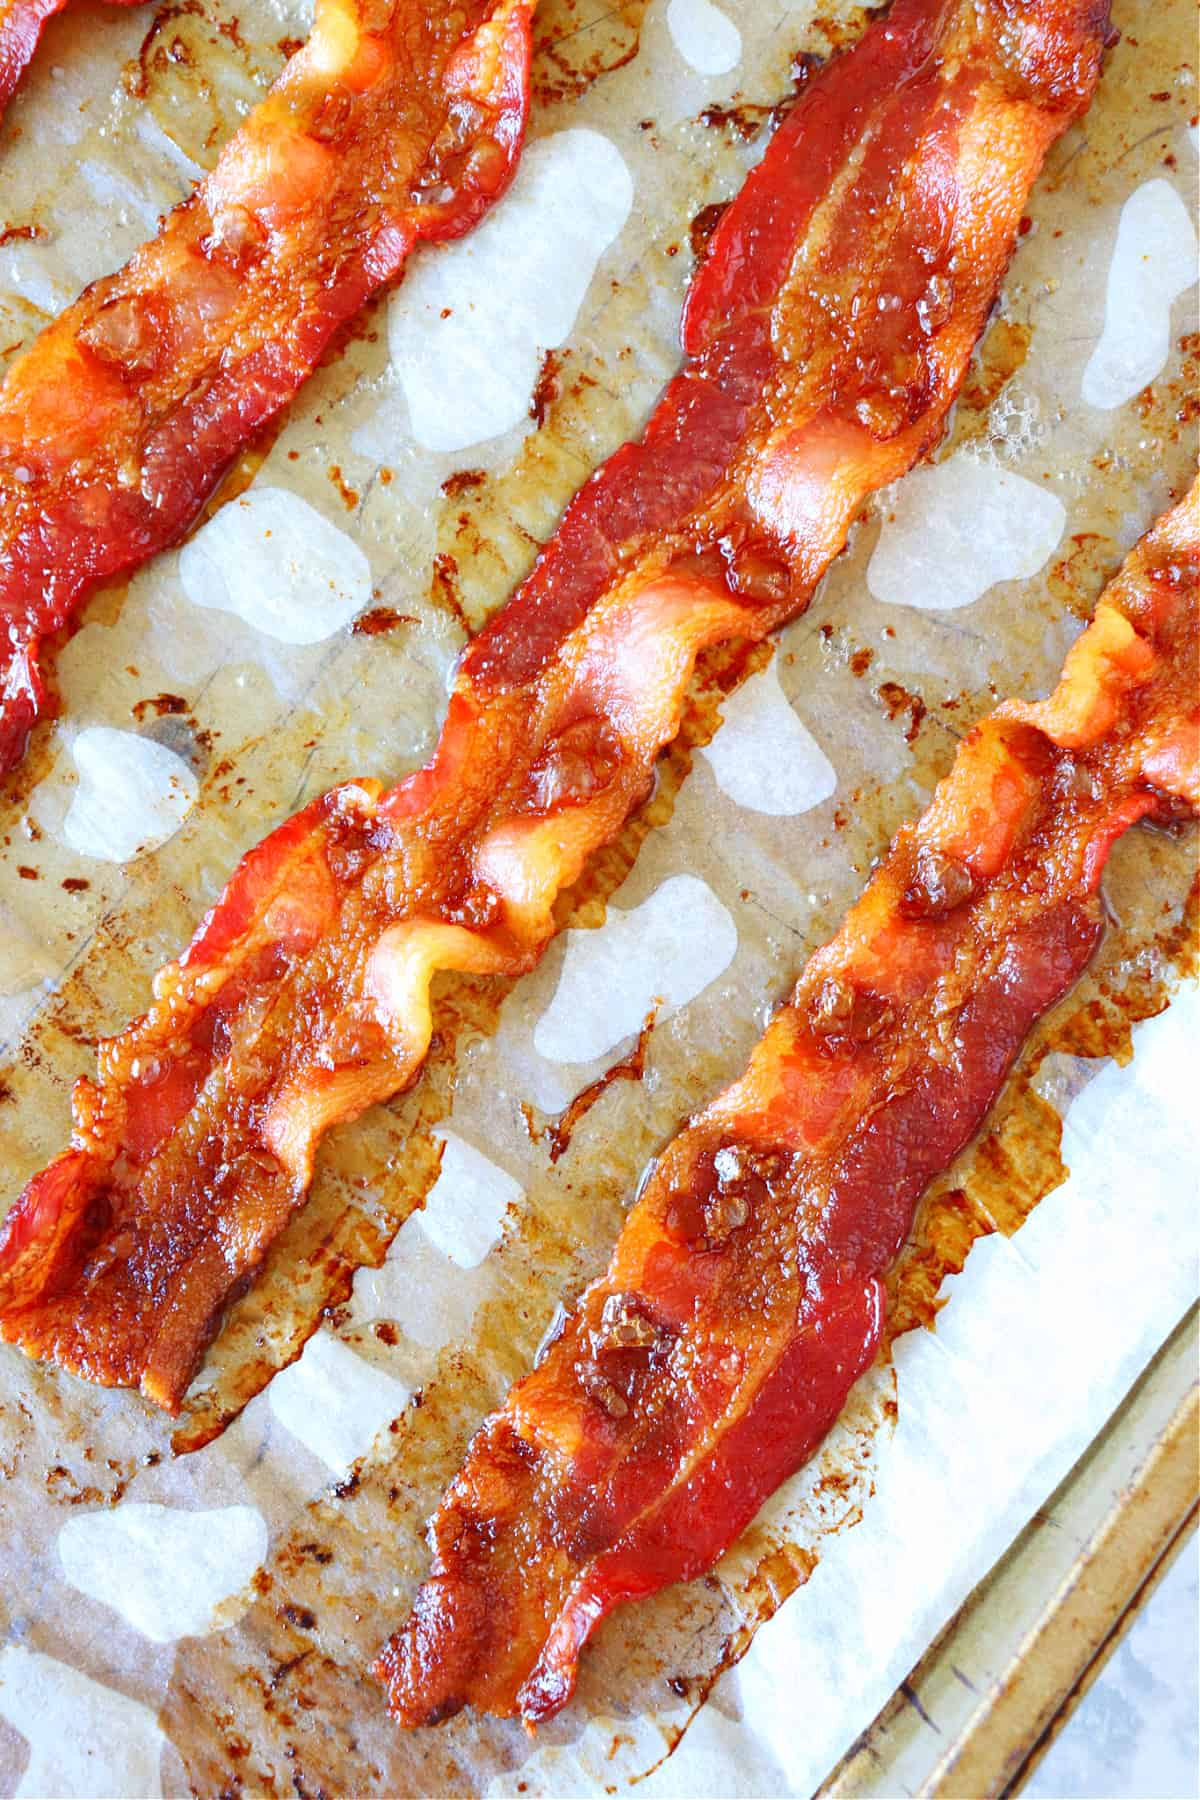 oven baked bacon A How to Cook Bacon in the Oven